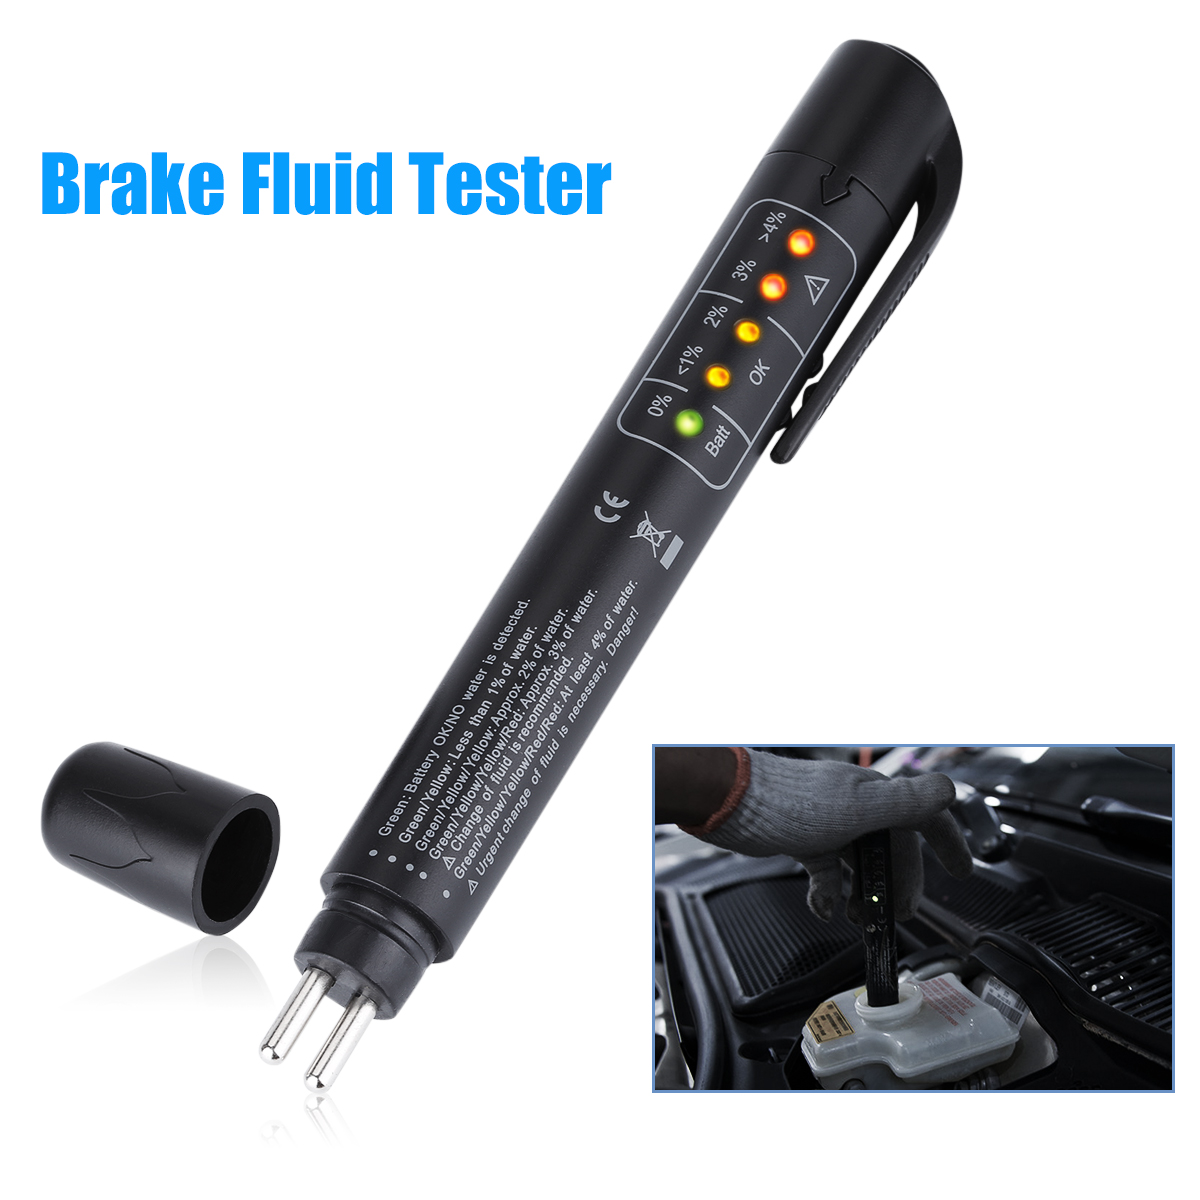 Brake Fluid Tester Pen With 5 Led Display Hobbyist Co Nz